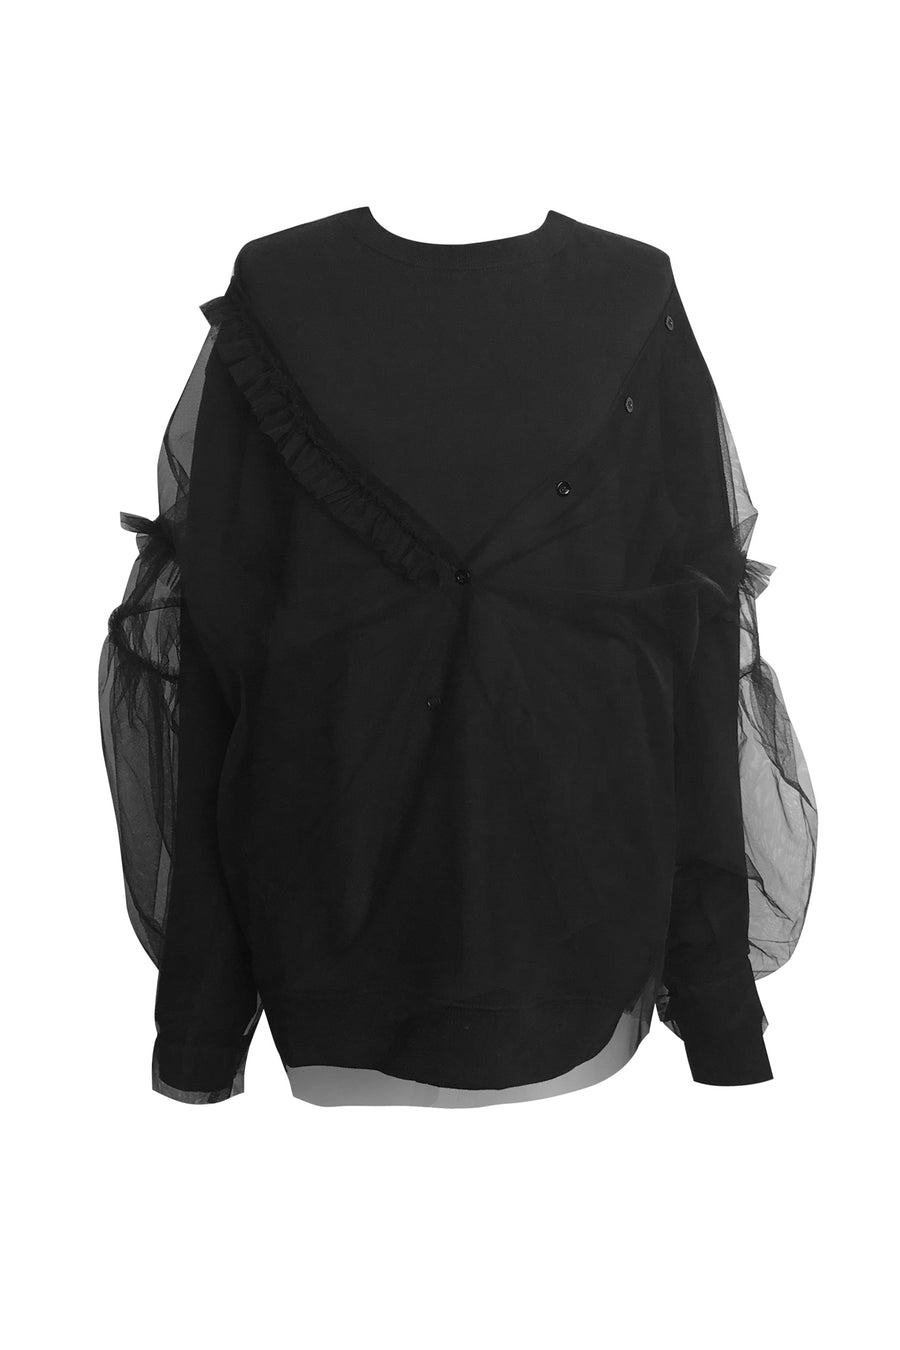 Tulle Shirt Attached to Sweatshirt in Black